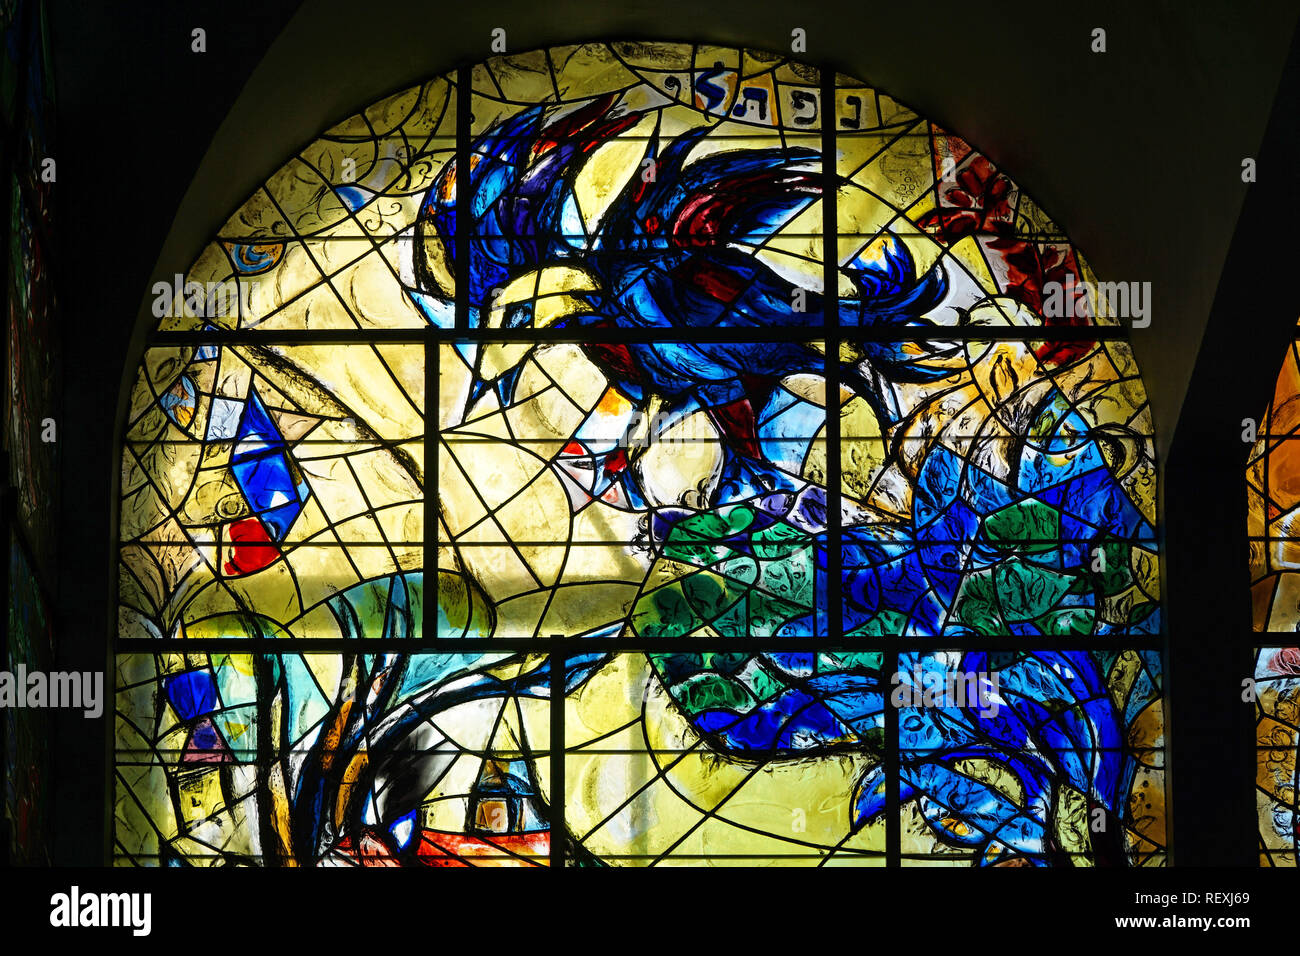 Hadassah Hospital's synagogue is decorated with Marc Chagall's colorful stained glass windows of the tribes of Israel, this one depicting Naphtali. - Stock Image